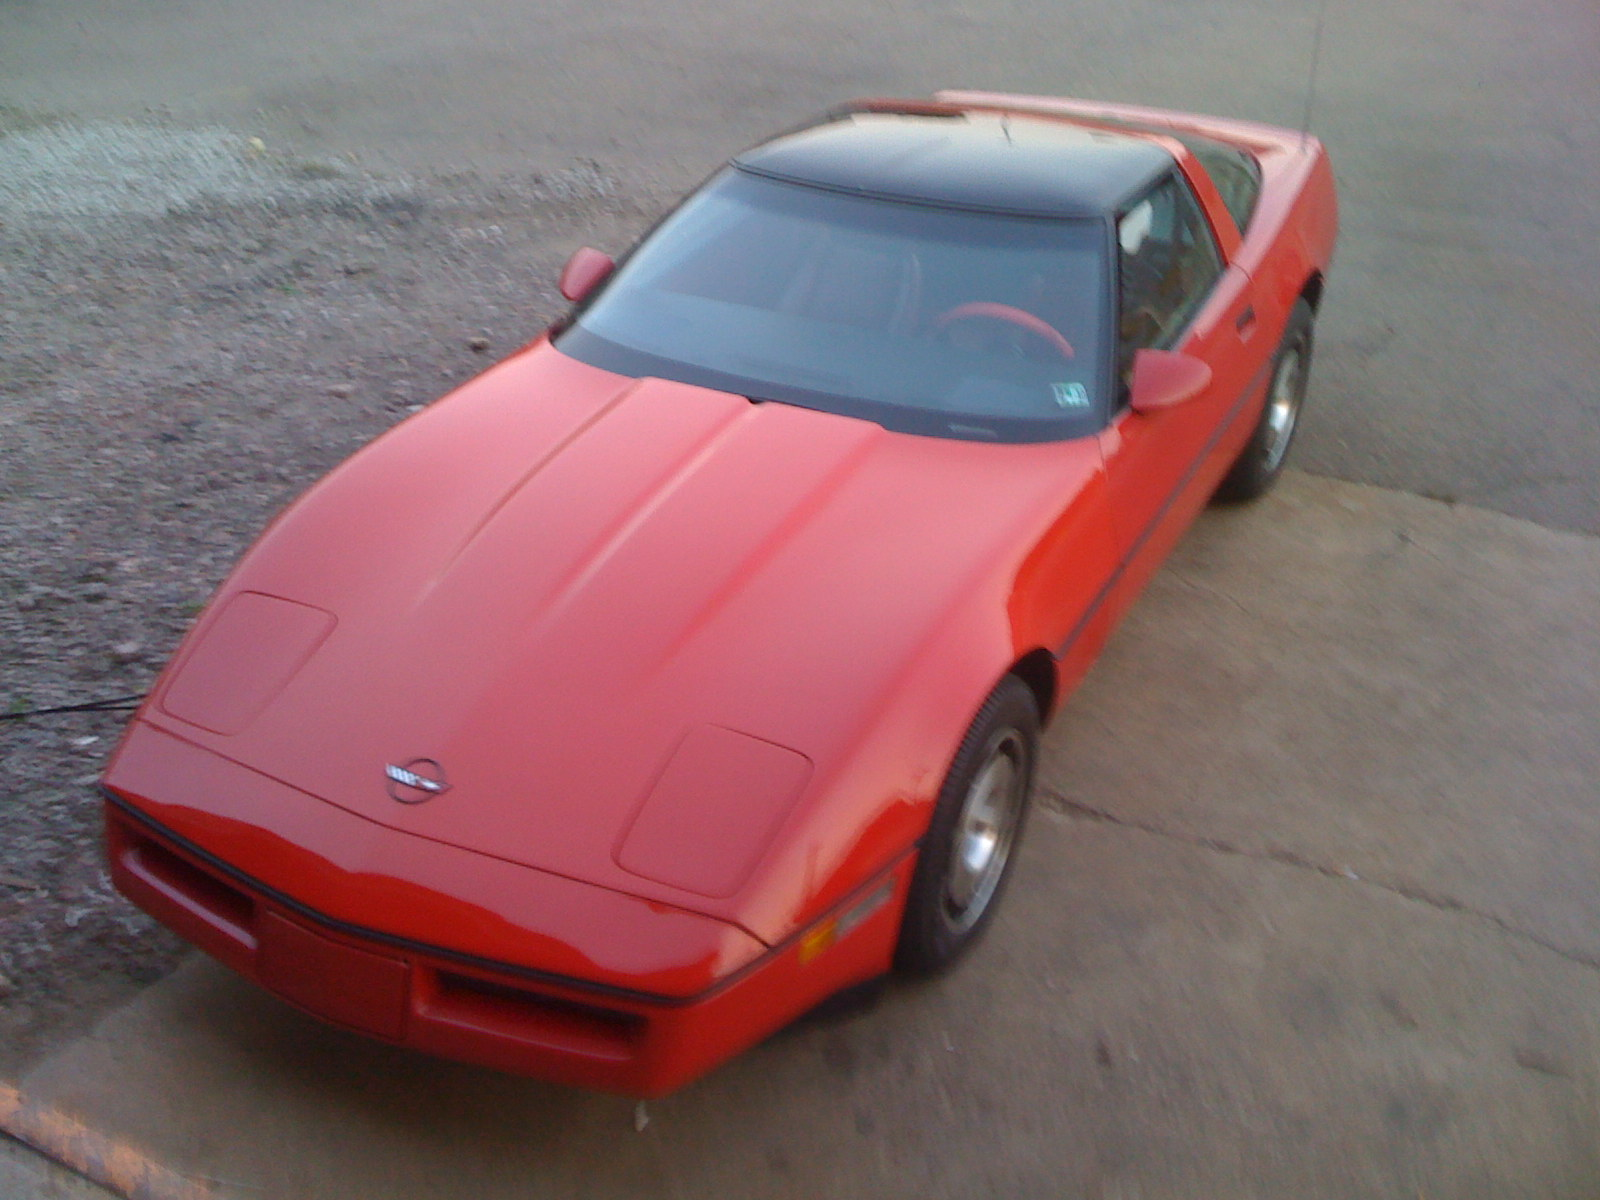 1985 Chevrolet Corvette Base, Picture of 1985 Chevrolet Corvette Coupe